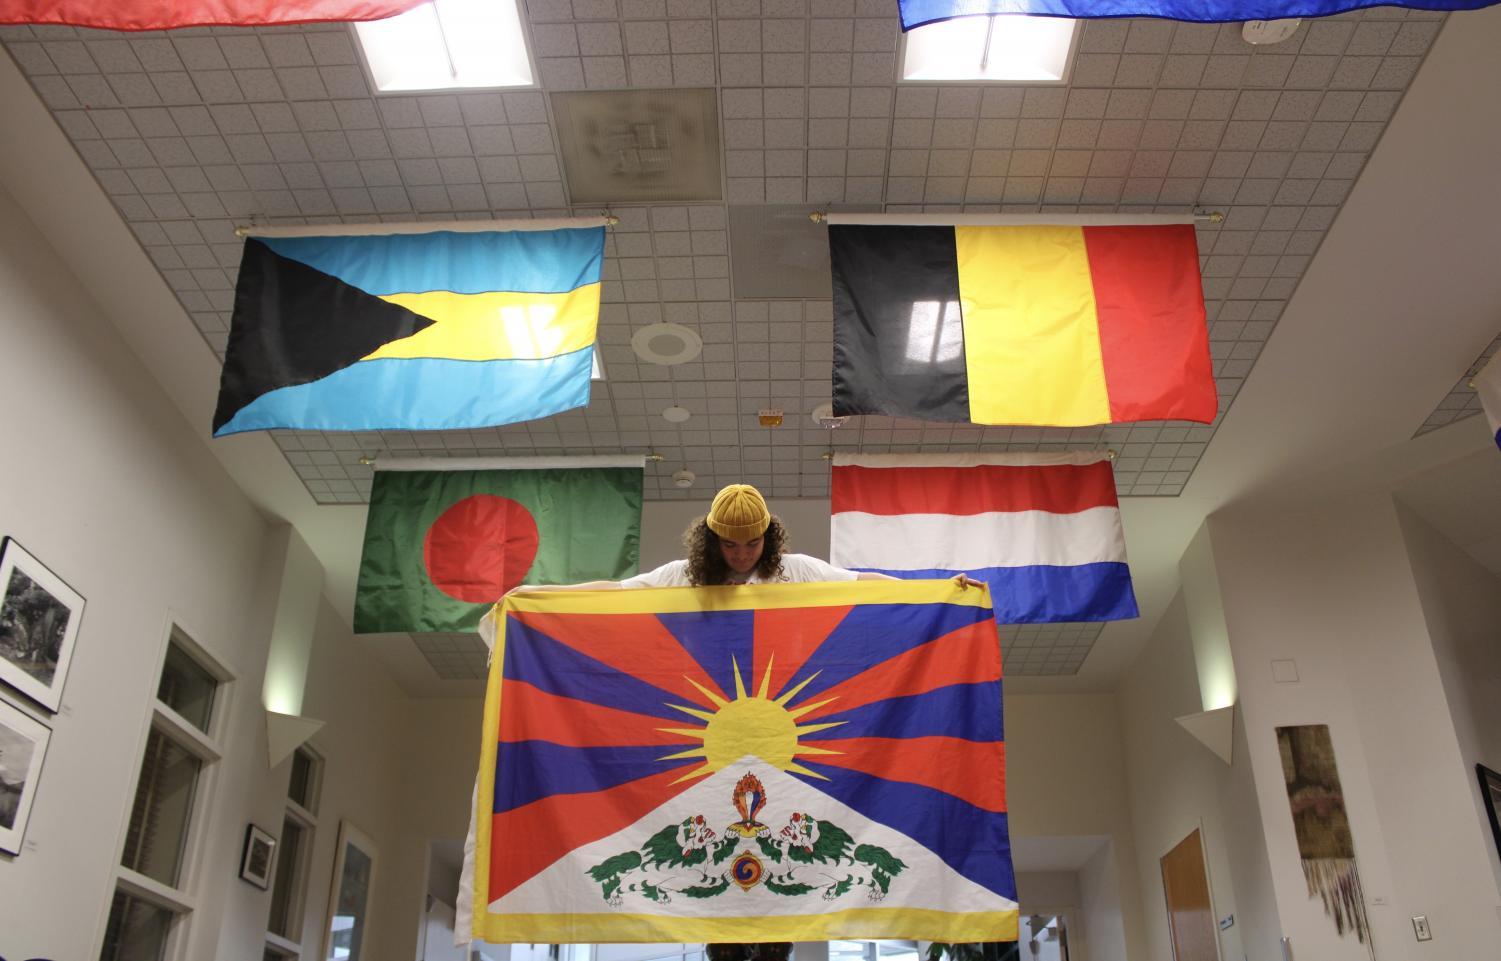 Junior sustainable development major Justin Marks is an advocate for justice in Tibet, which is currently under Chinese Rule. Marks is starting the club